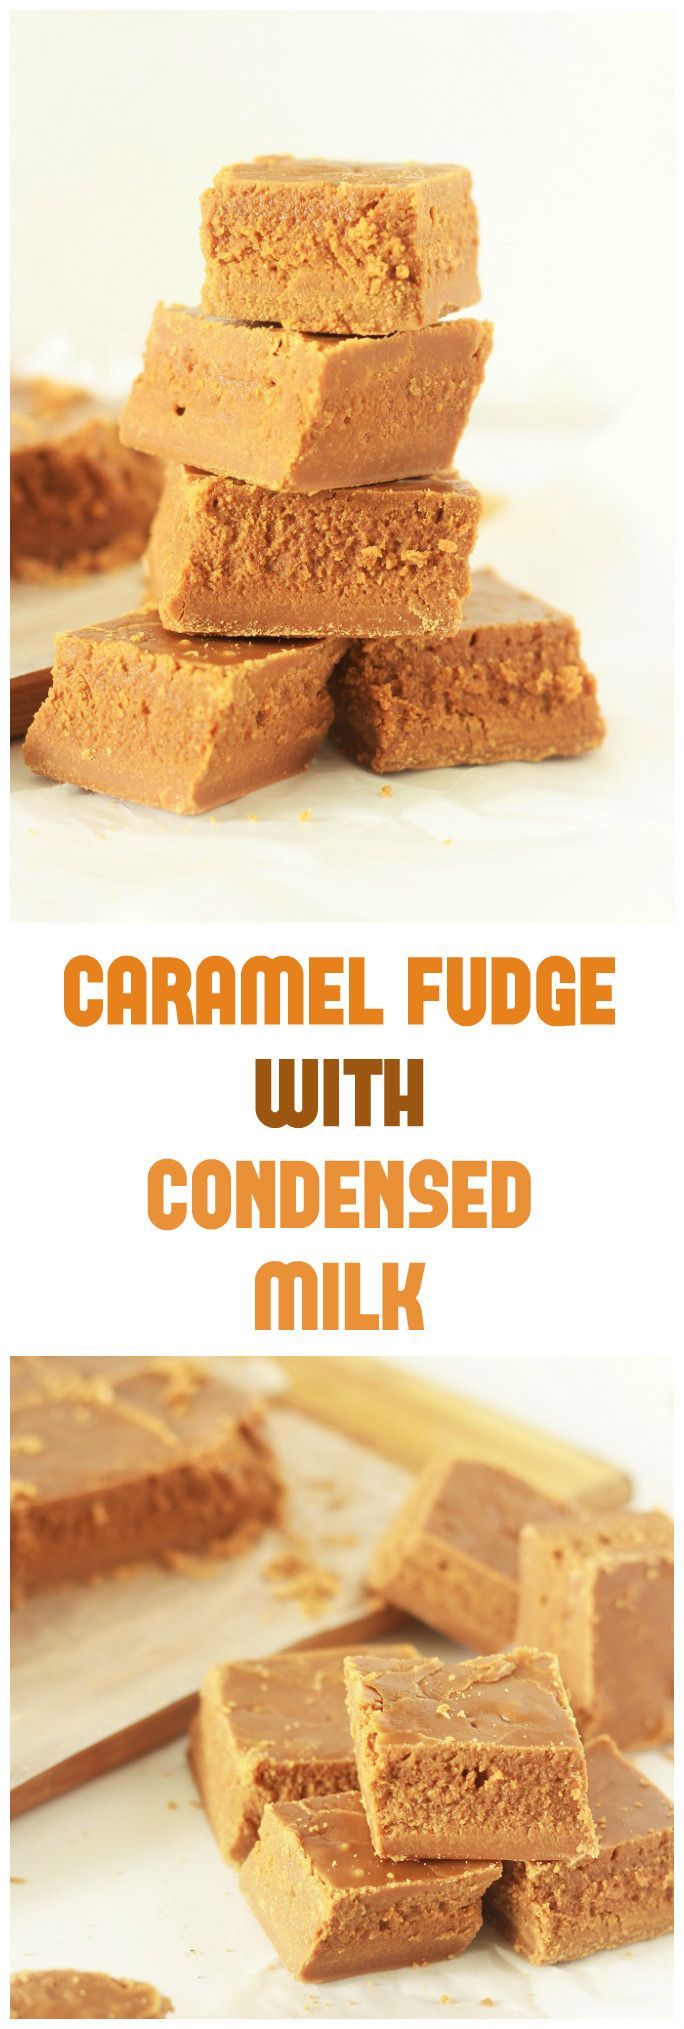 Easy Caramel Fudge With Condensed Milk Without Using Thermometer Tasty Yummy Caramel Fu With Images Fudge With Condensed Milk Sweetened Condensed Milk Recipes Fudge Easy